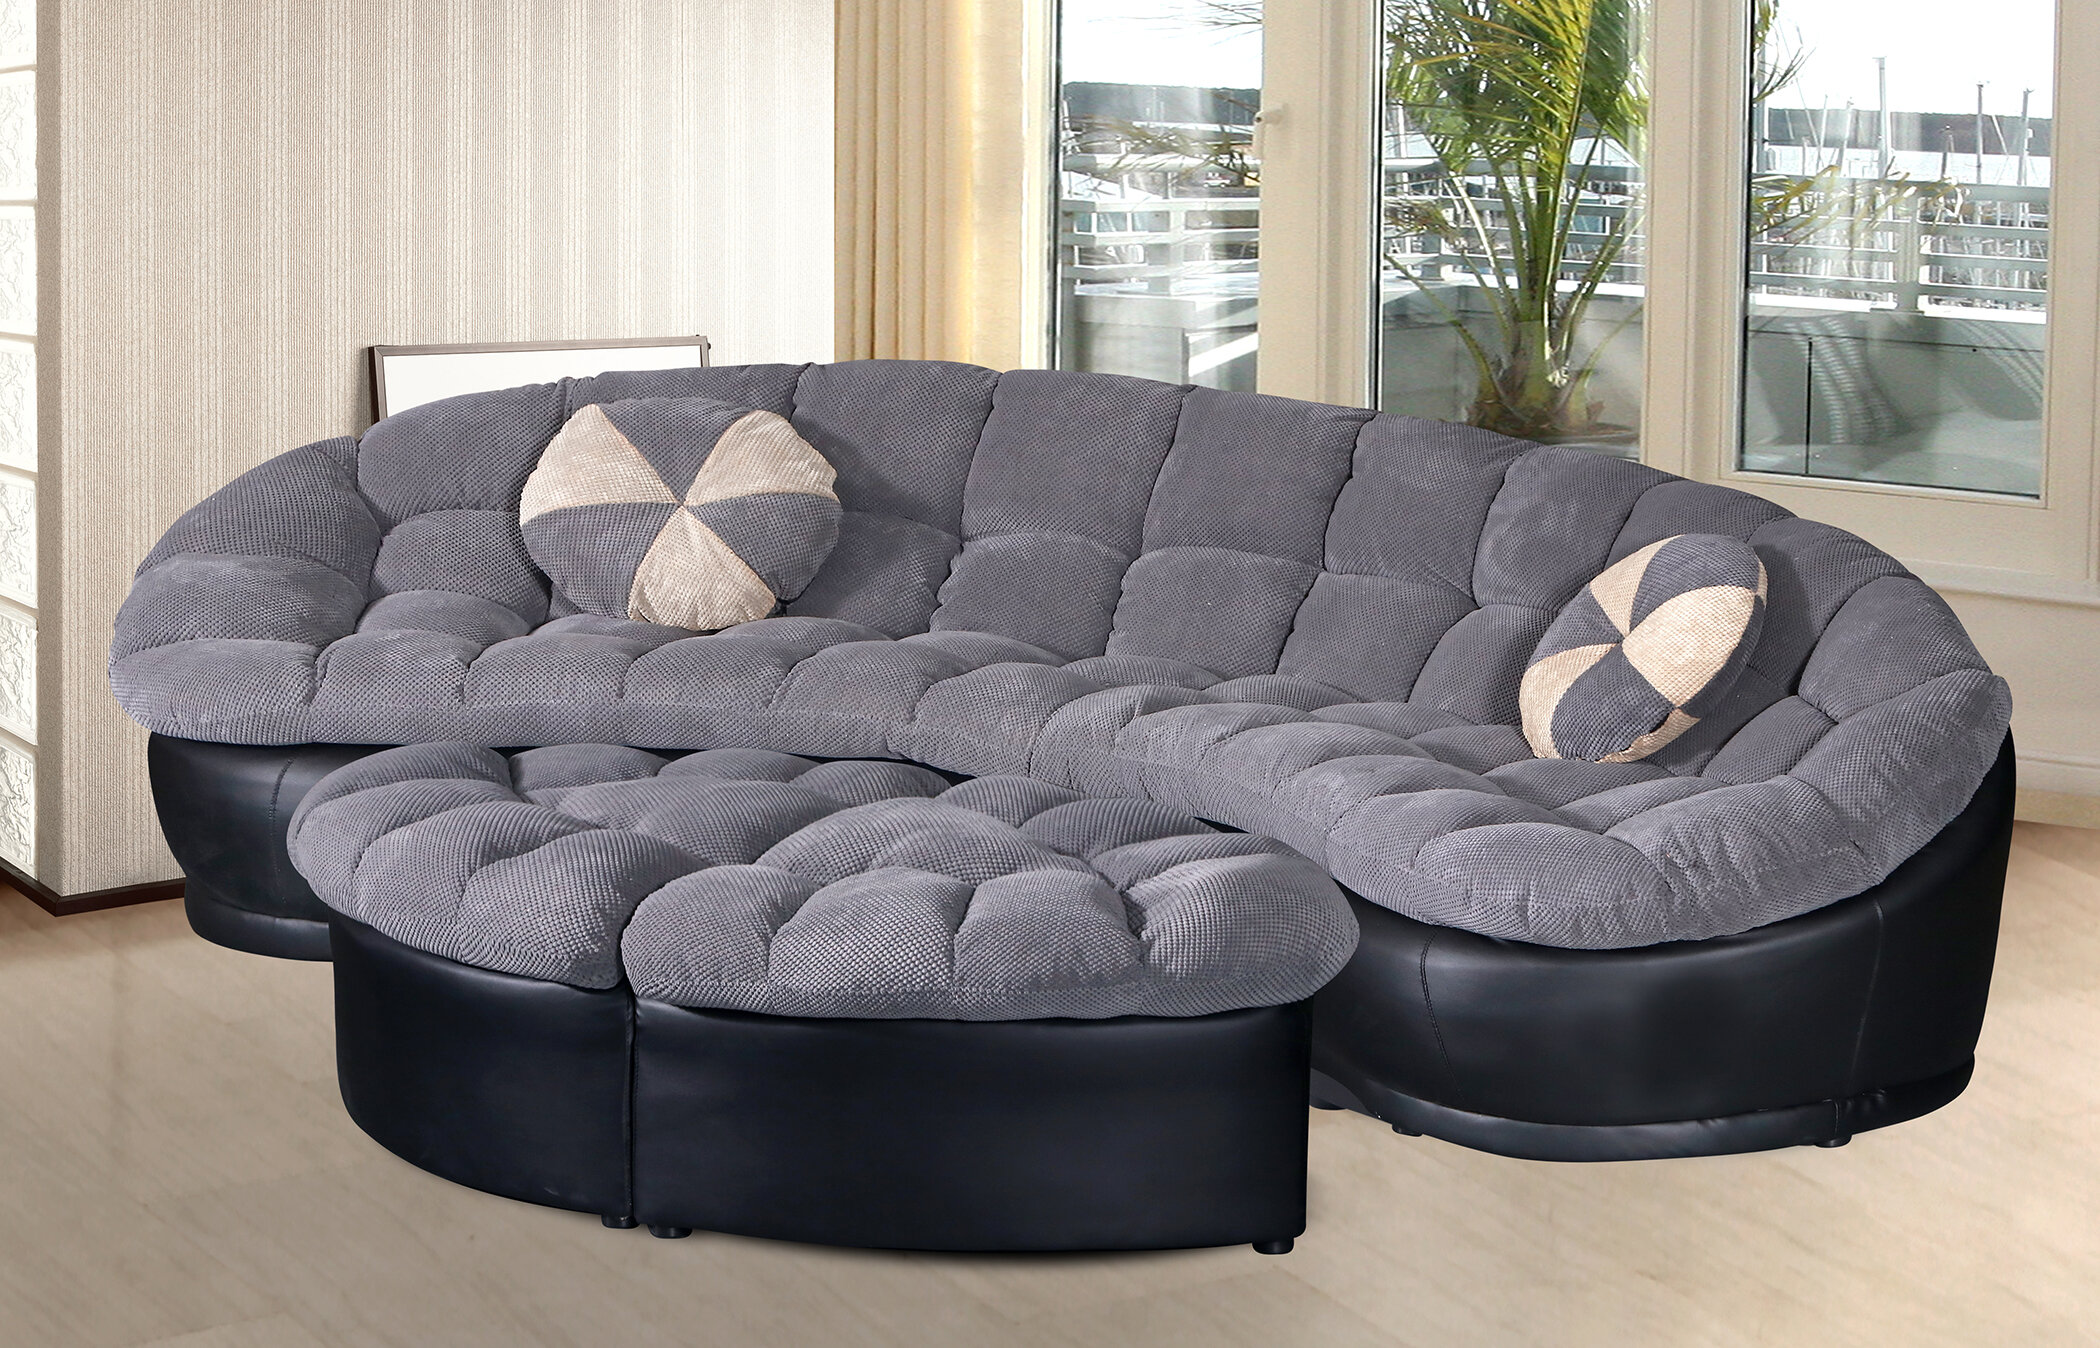 Fine Ilyas Living Room Symmetrical Sectional With Ottoman Ibusinesslaw Wood Chair Design Ideas Ibusinesslaworg